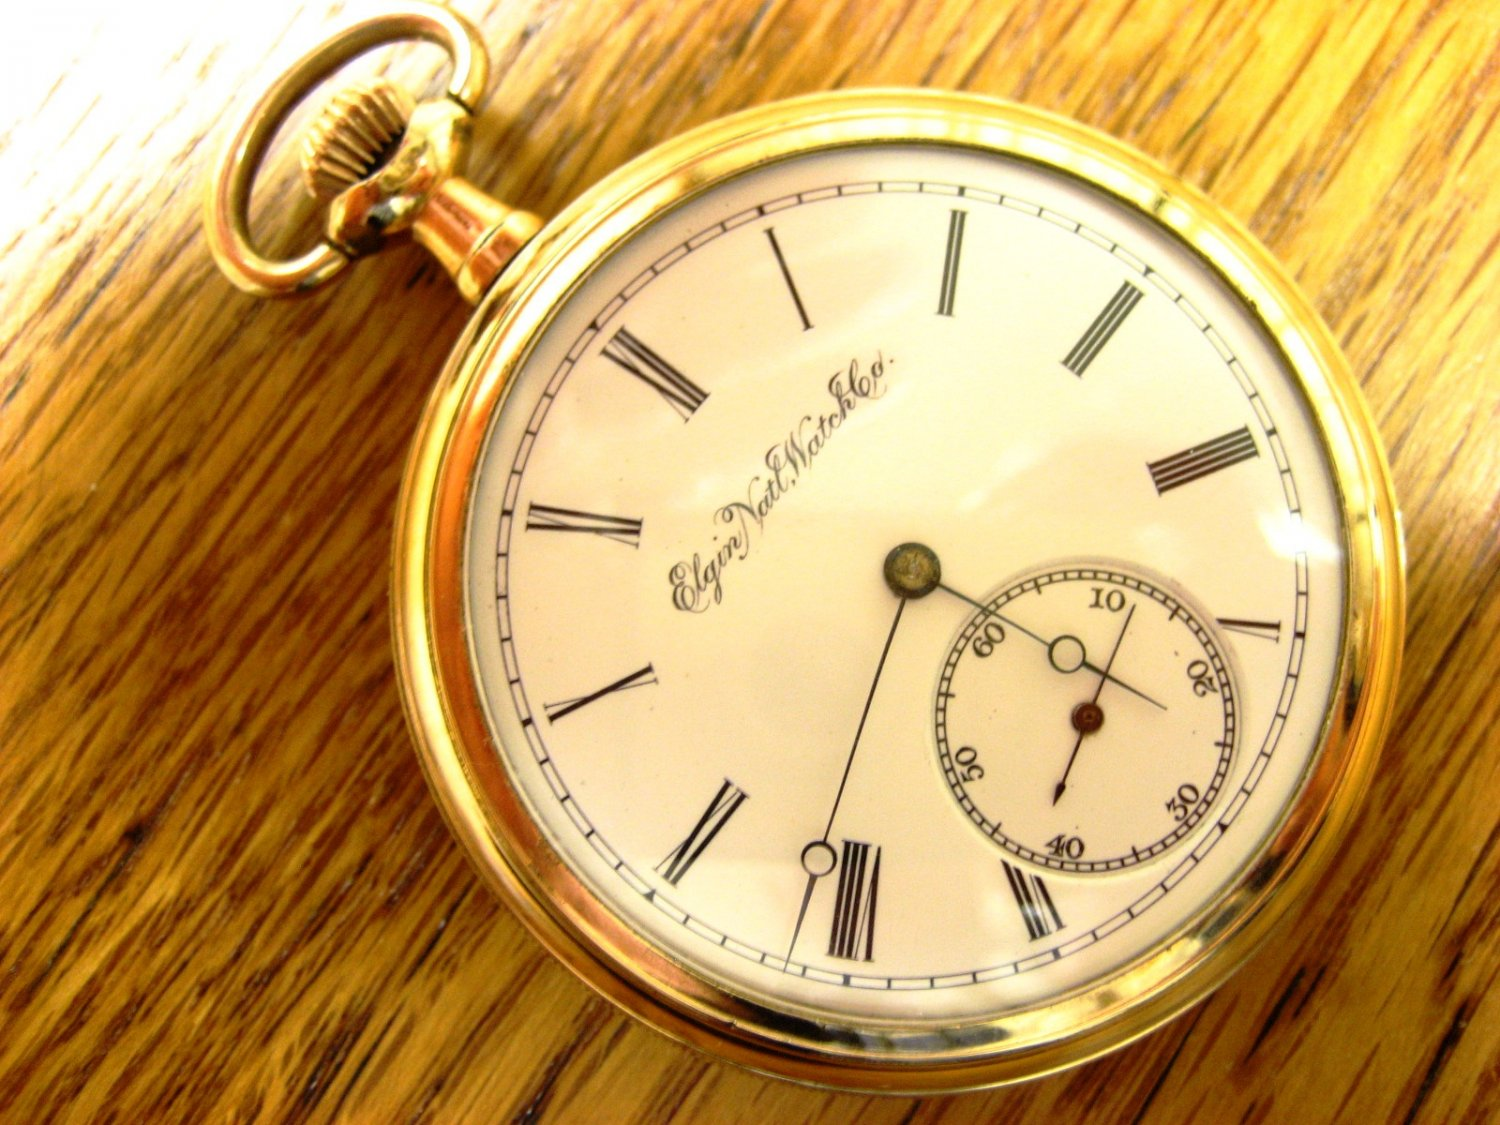 Elgin pocket watch value guide